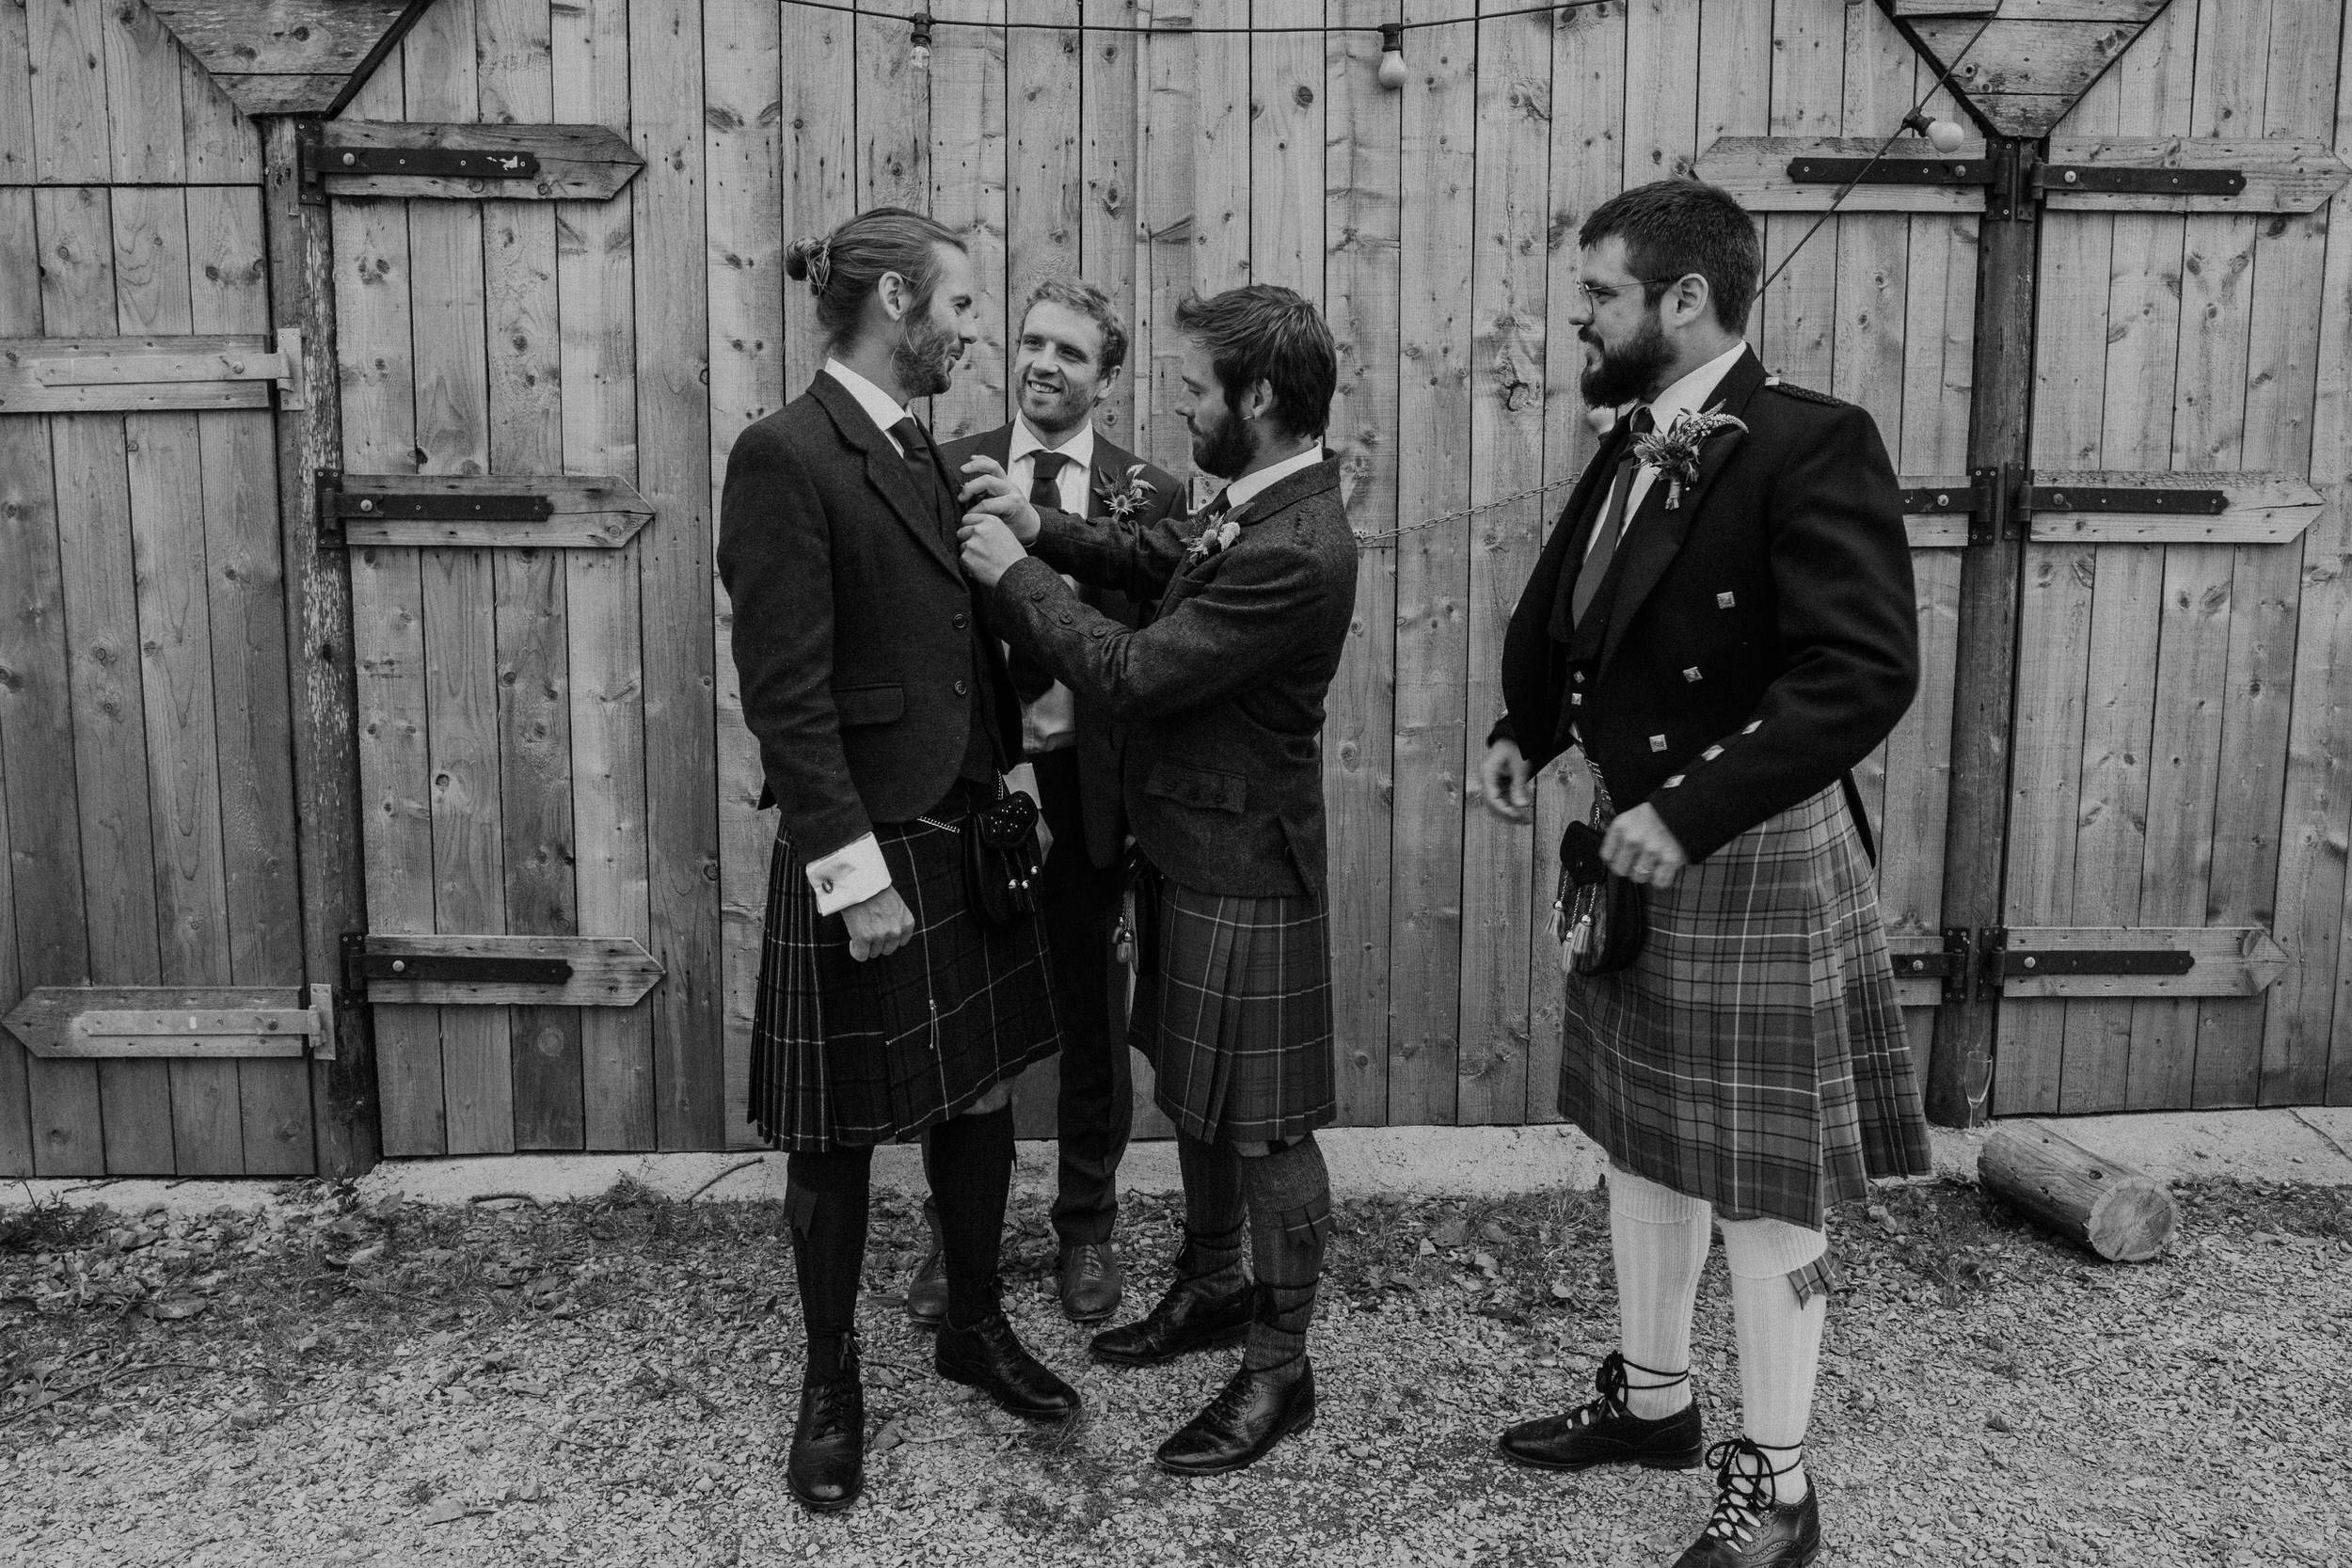 Alternative Quirky Wedding Photographer Scotland Borders Edinburgh 066.jpg